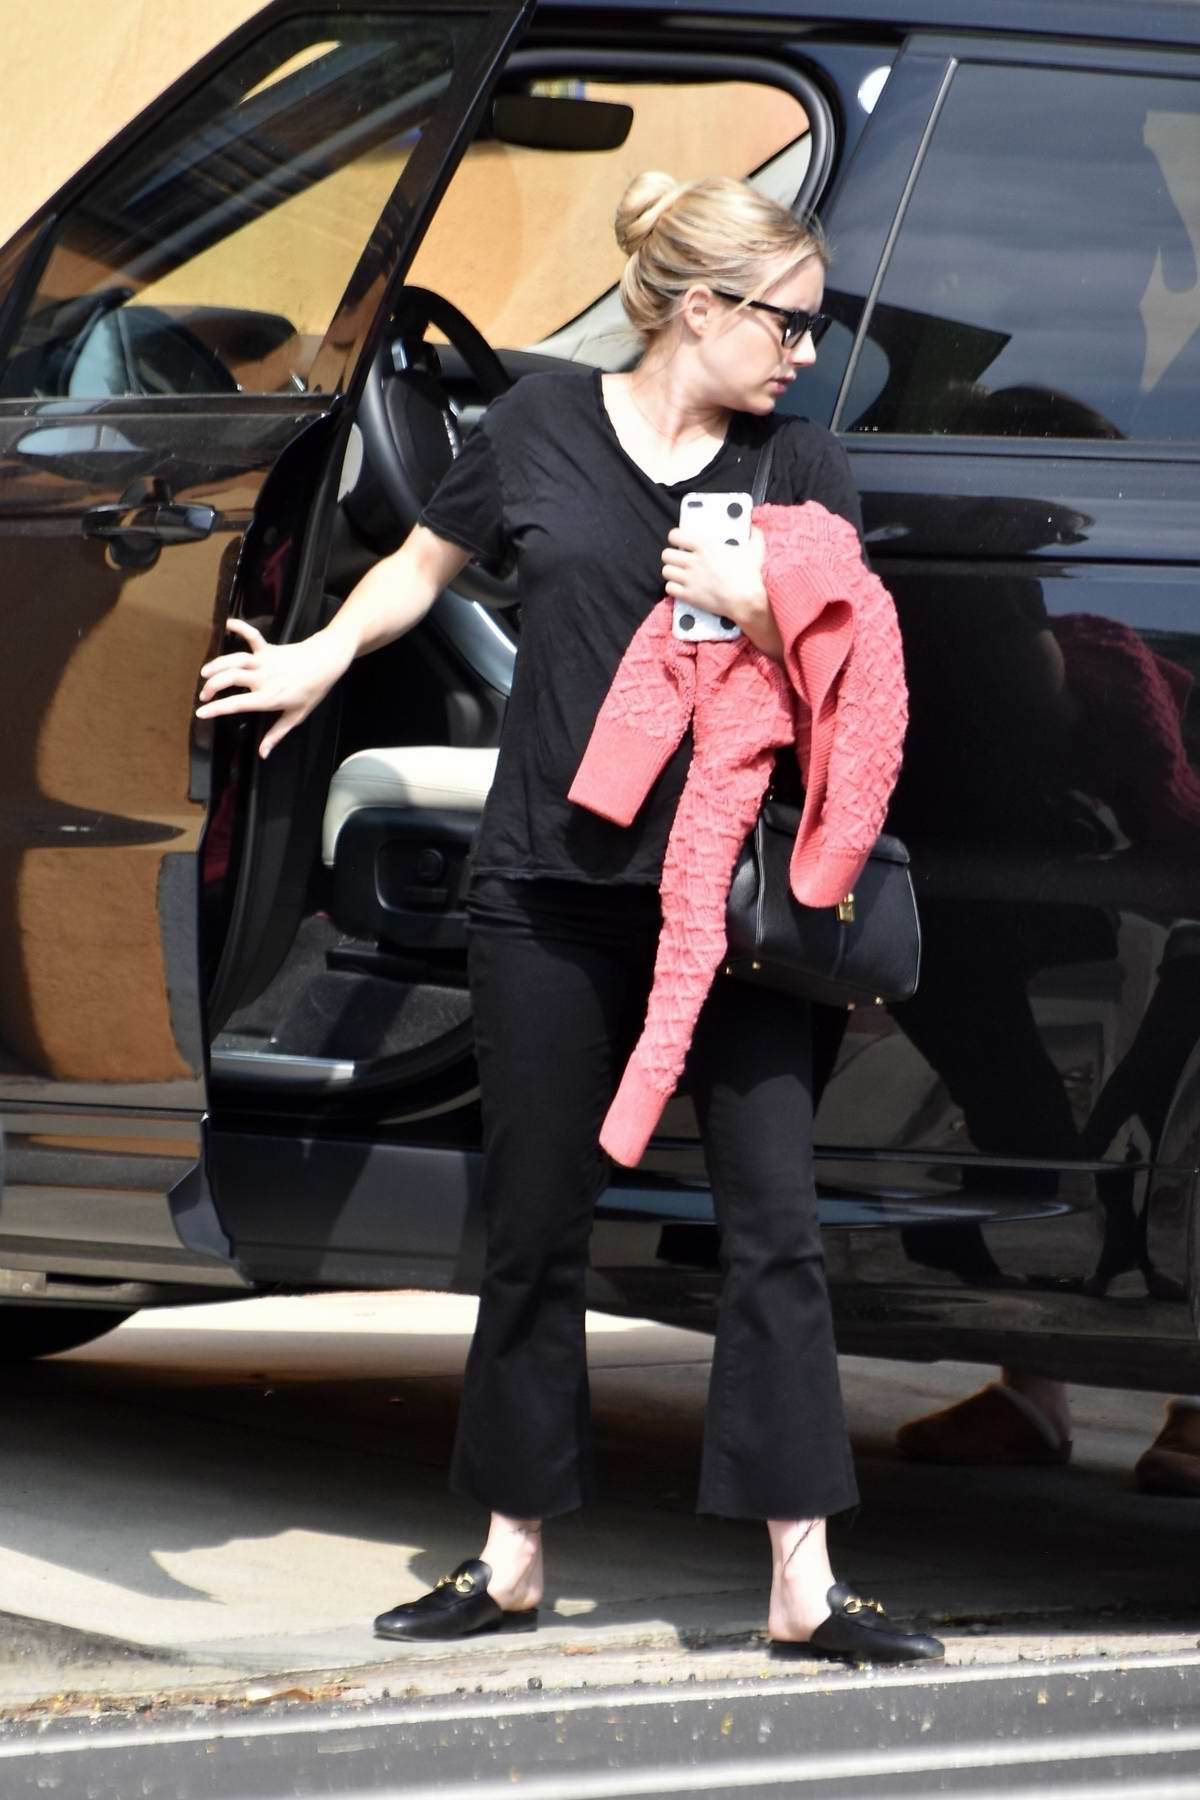 Emma Roberts Spotted In All Black As She Returns To Her Home With A Friend After